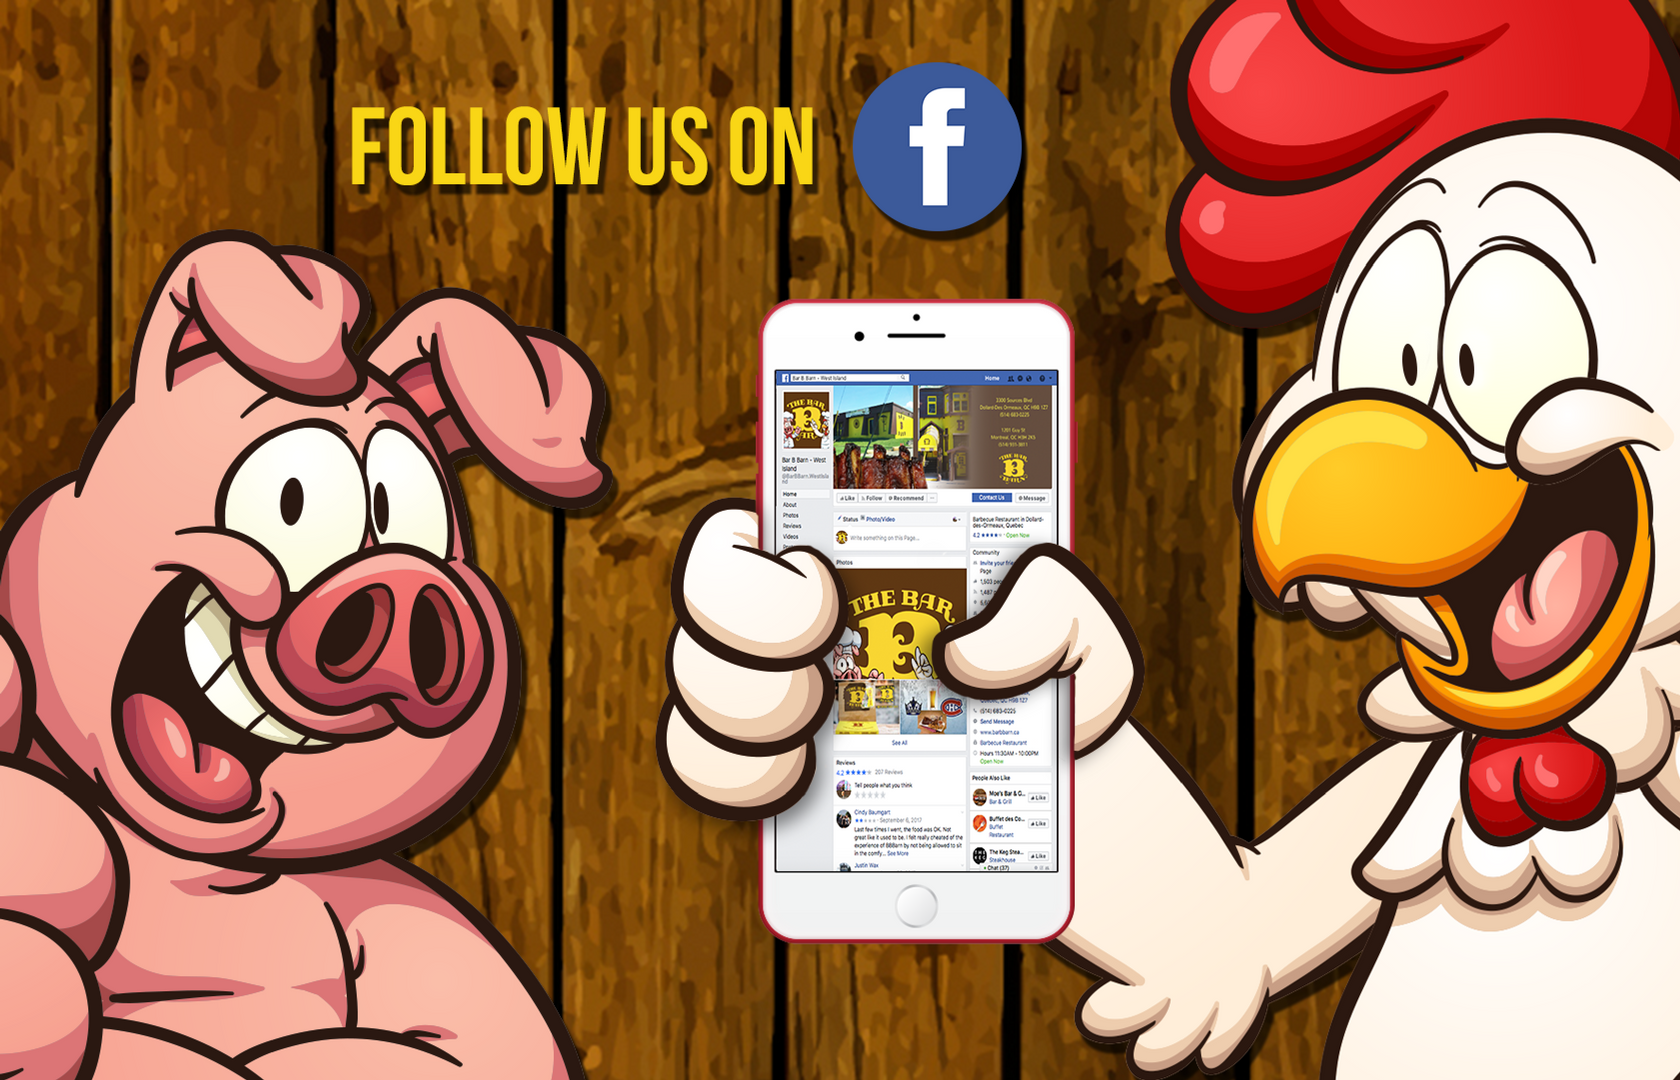 Social Media - Be Sure to like the Official Bar-B Barn Facebook page to stay up to date on all things Ribs and Chicken